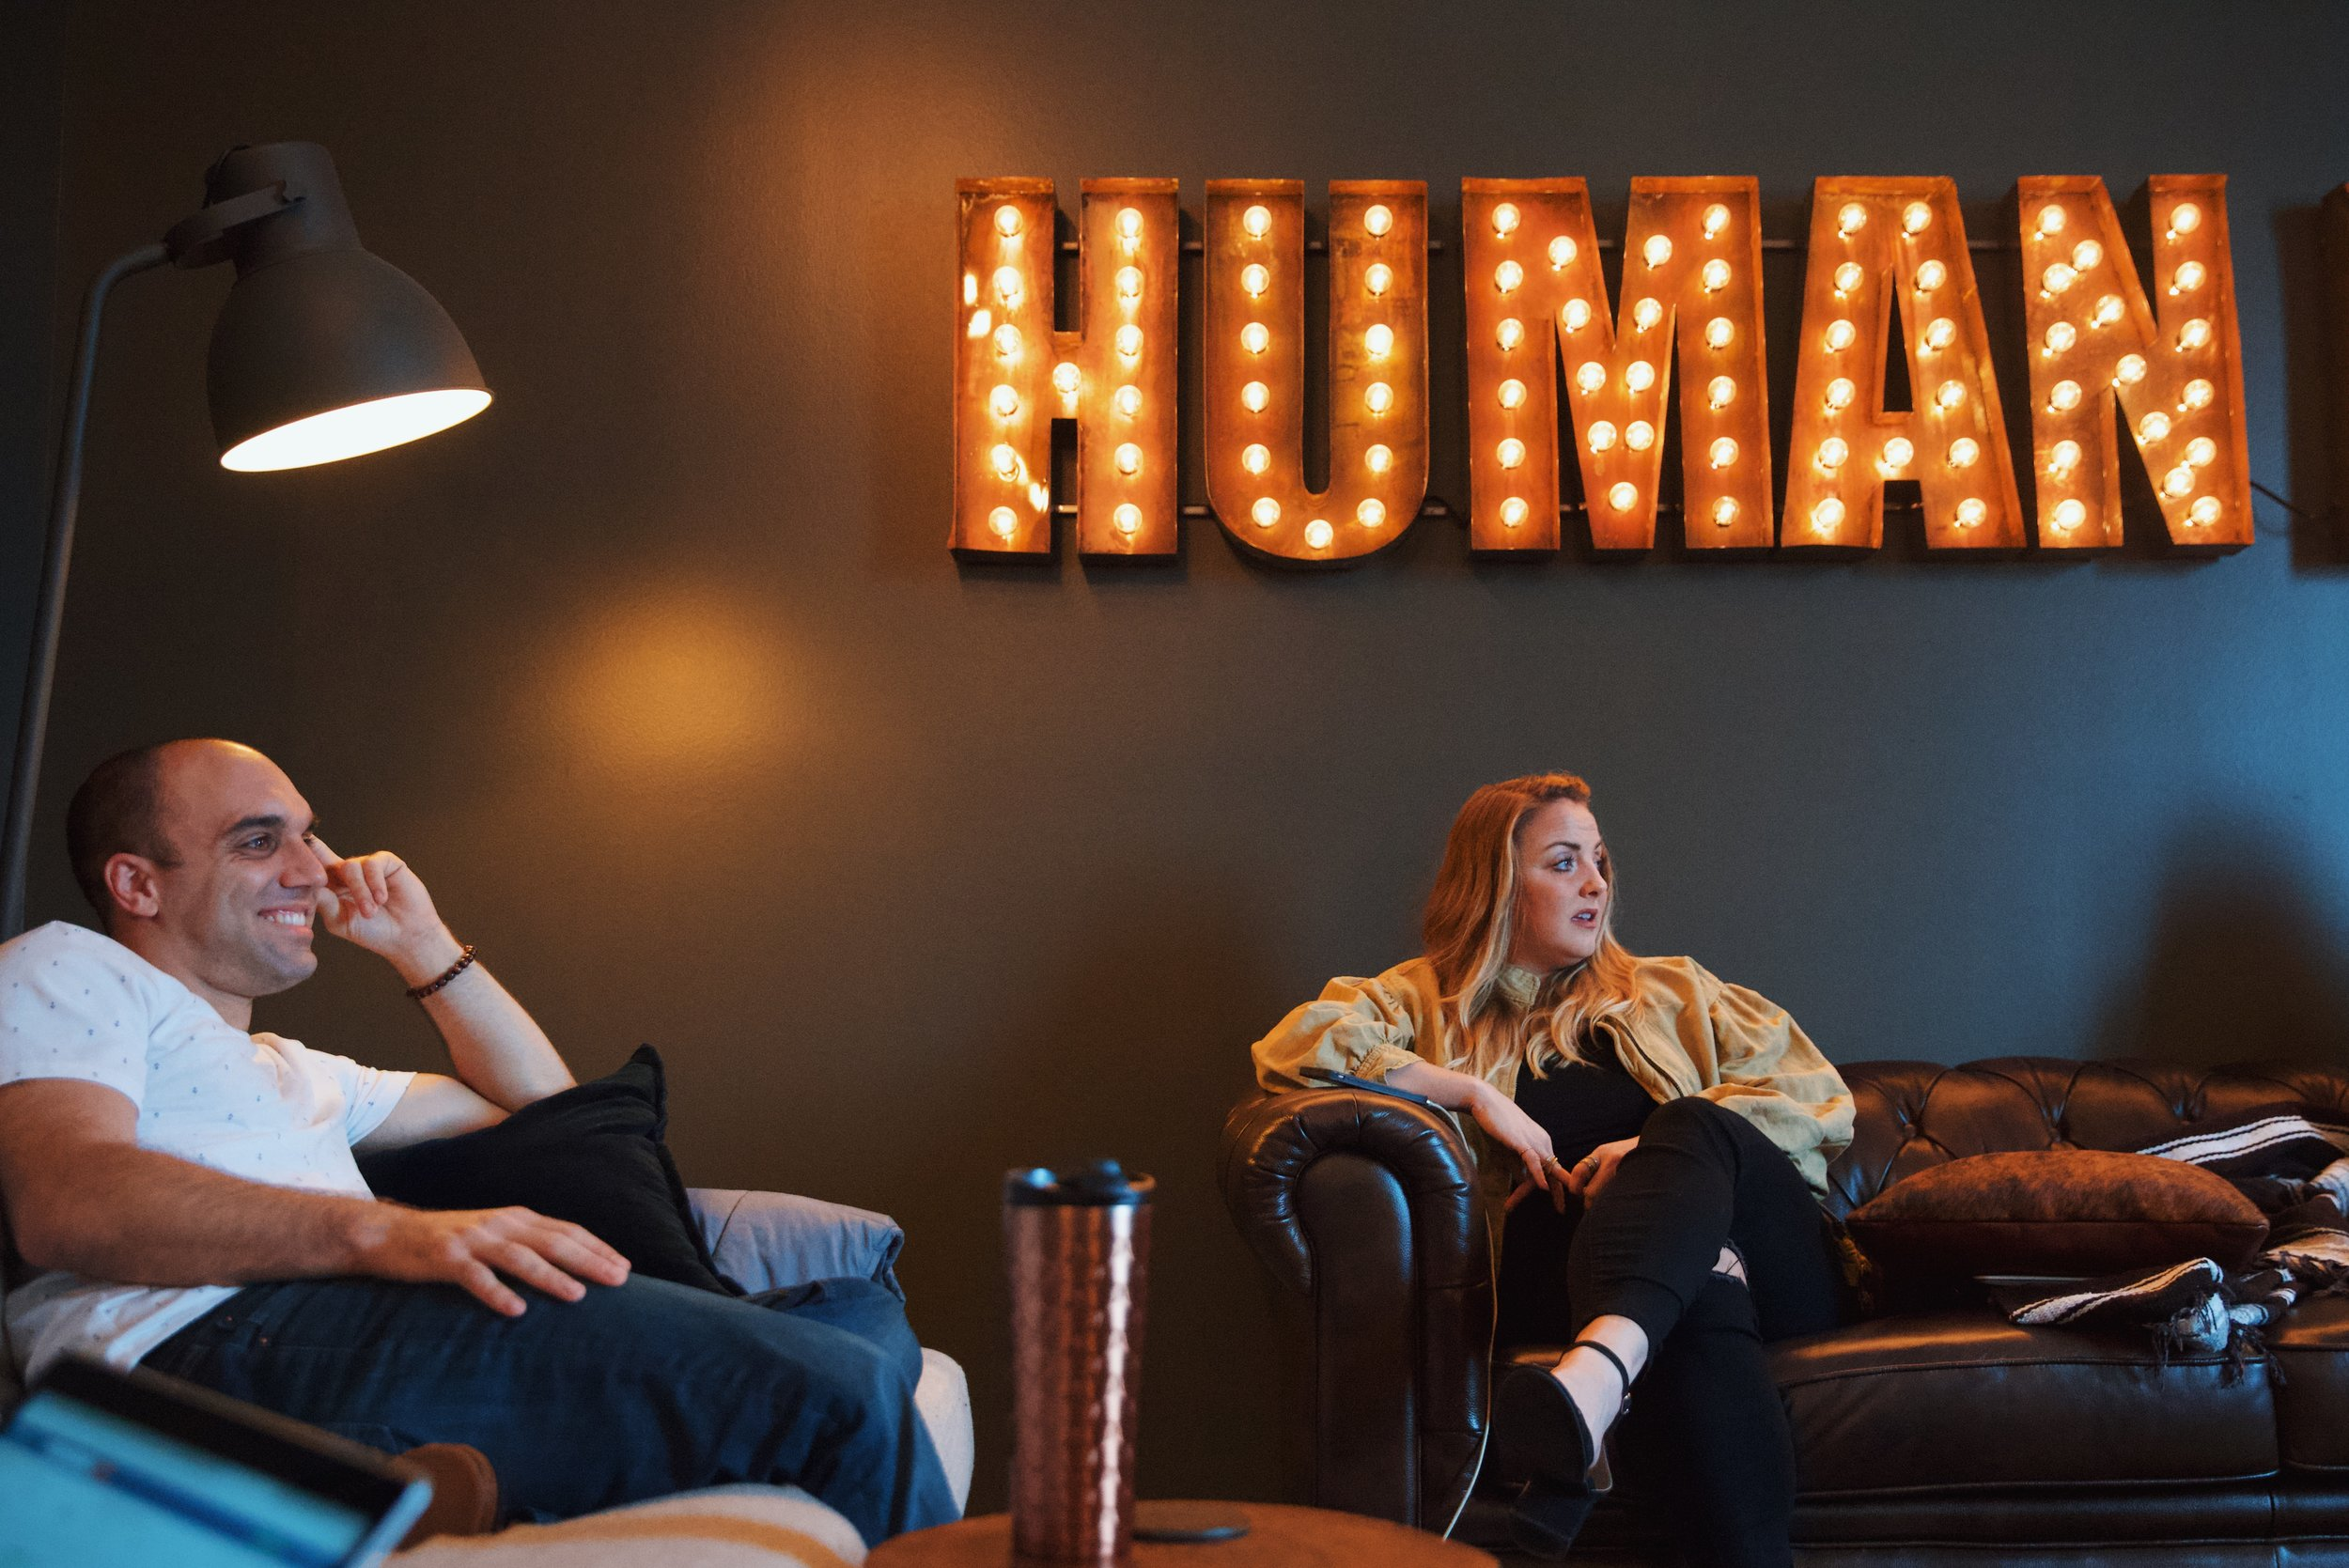 HumanHQ houston heights personal development small group coaching networking new to houston young professionals